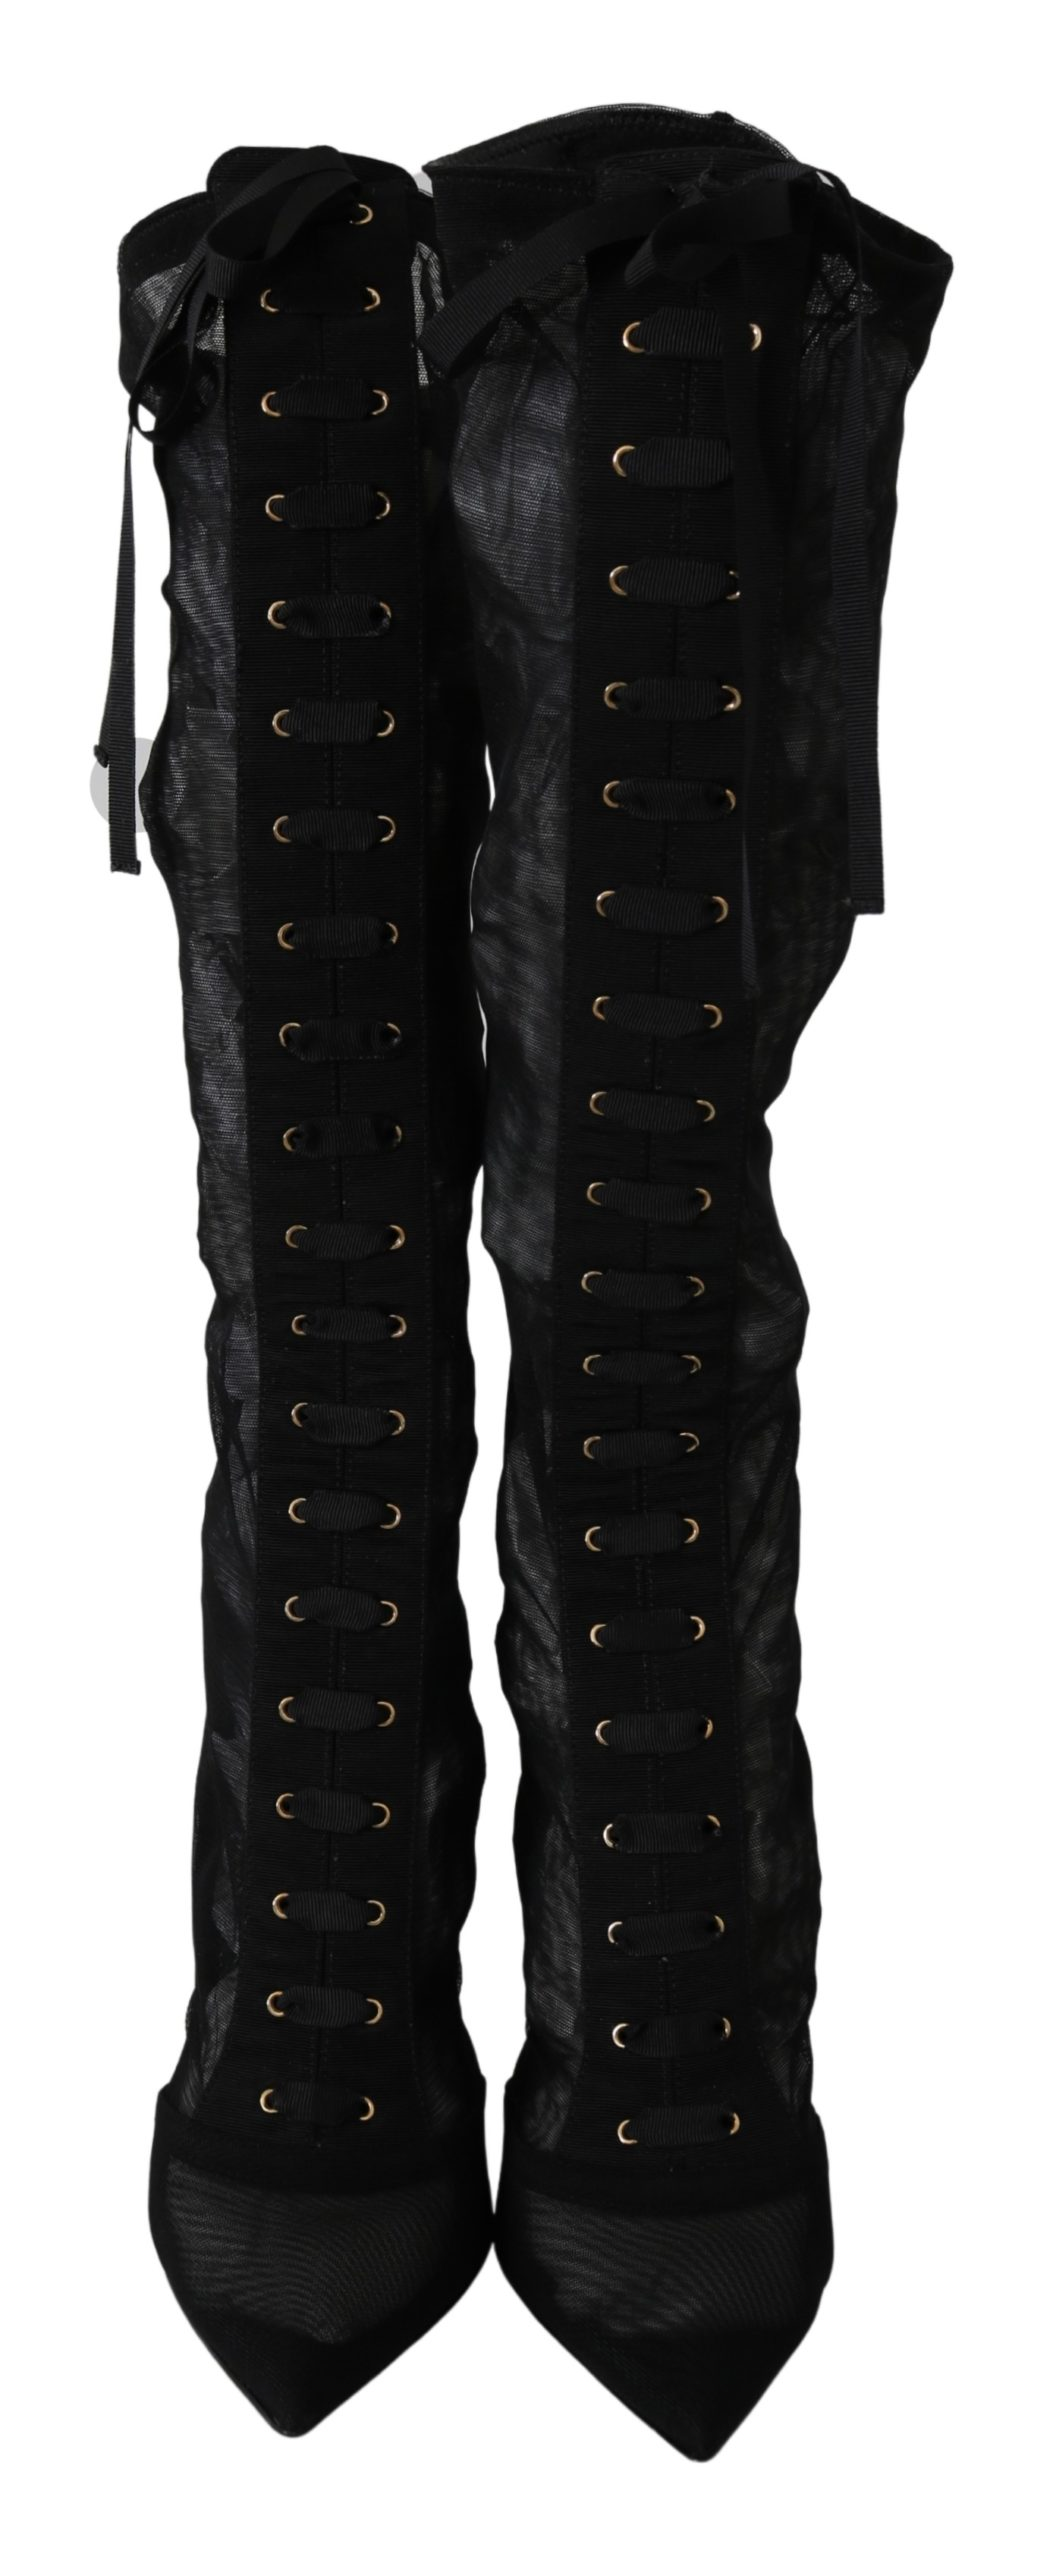 Black Tulle Stretch Knee Socks Shoes Boots - EU40/US9.5